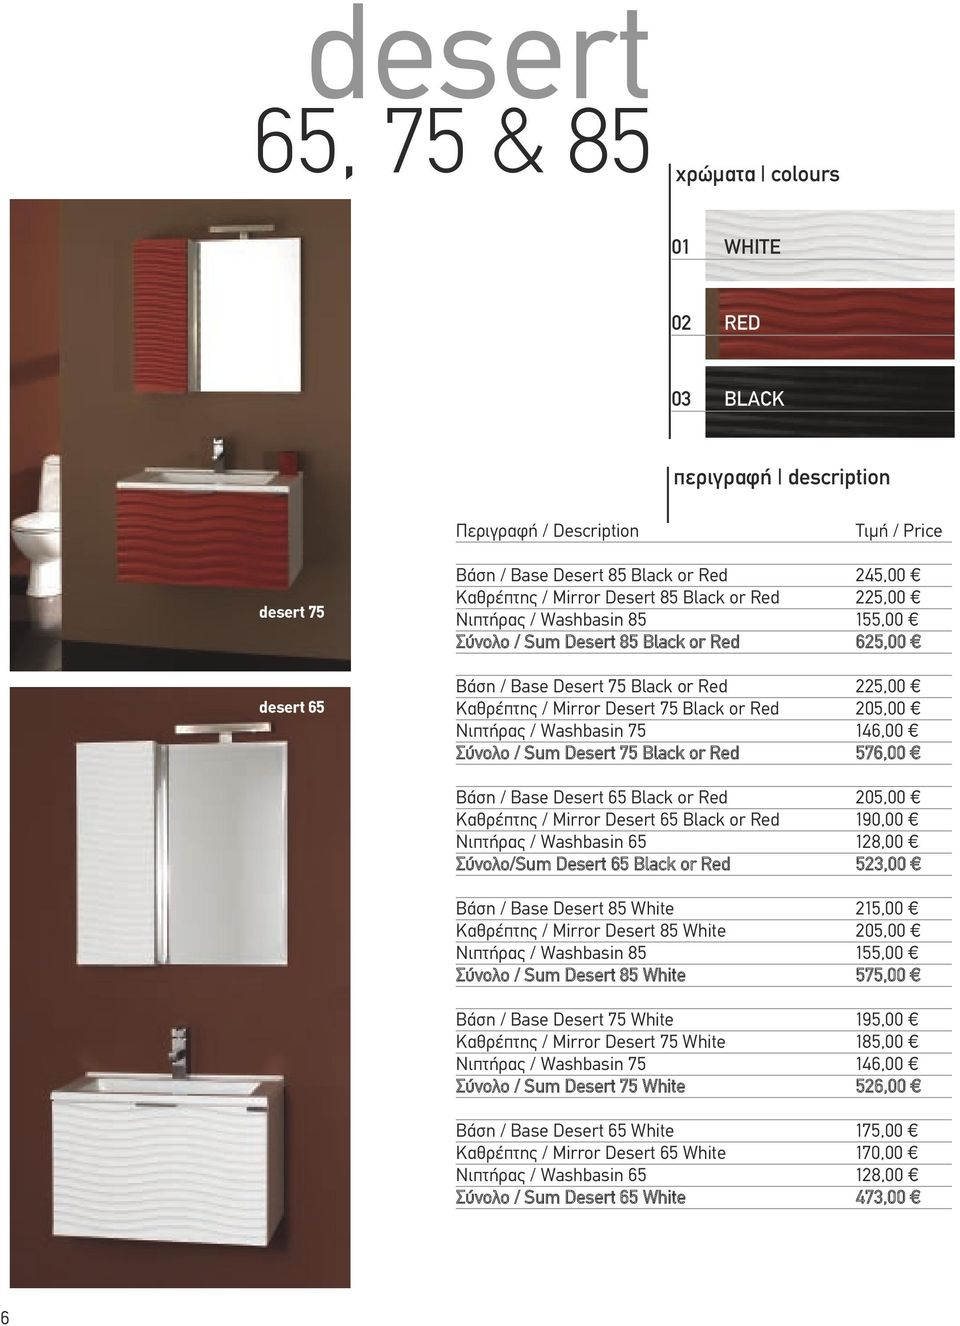 Νιπτήρας / Washbasin 75 146,00 Σύνολο / Sum Desert 75 Black or Red 576,00 Βάση / Base Desert 65 Black or Red 205,00 Καθρέπτης / Mirror Desert 65 Black or Red 190,00 Νιπτήρας / Washbasin 65 128,00